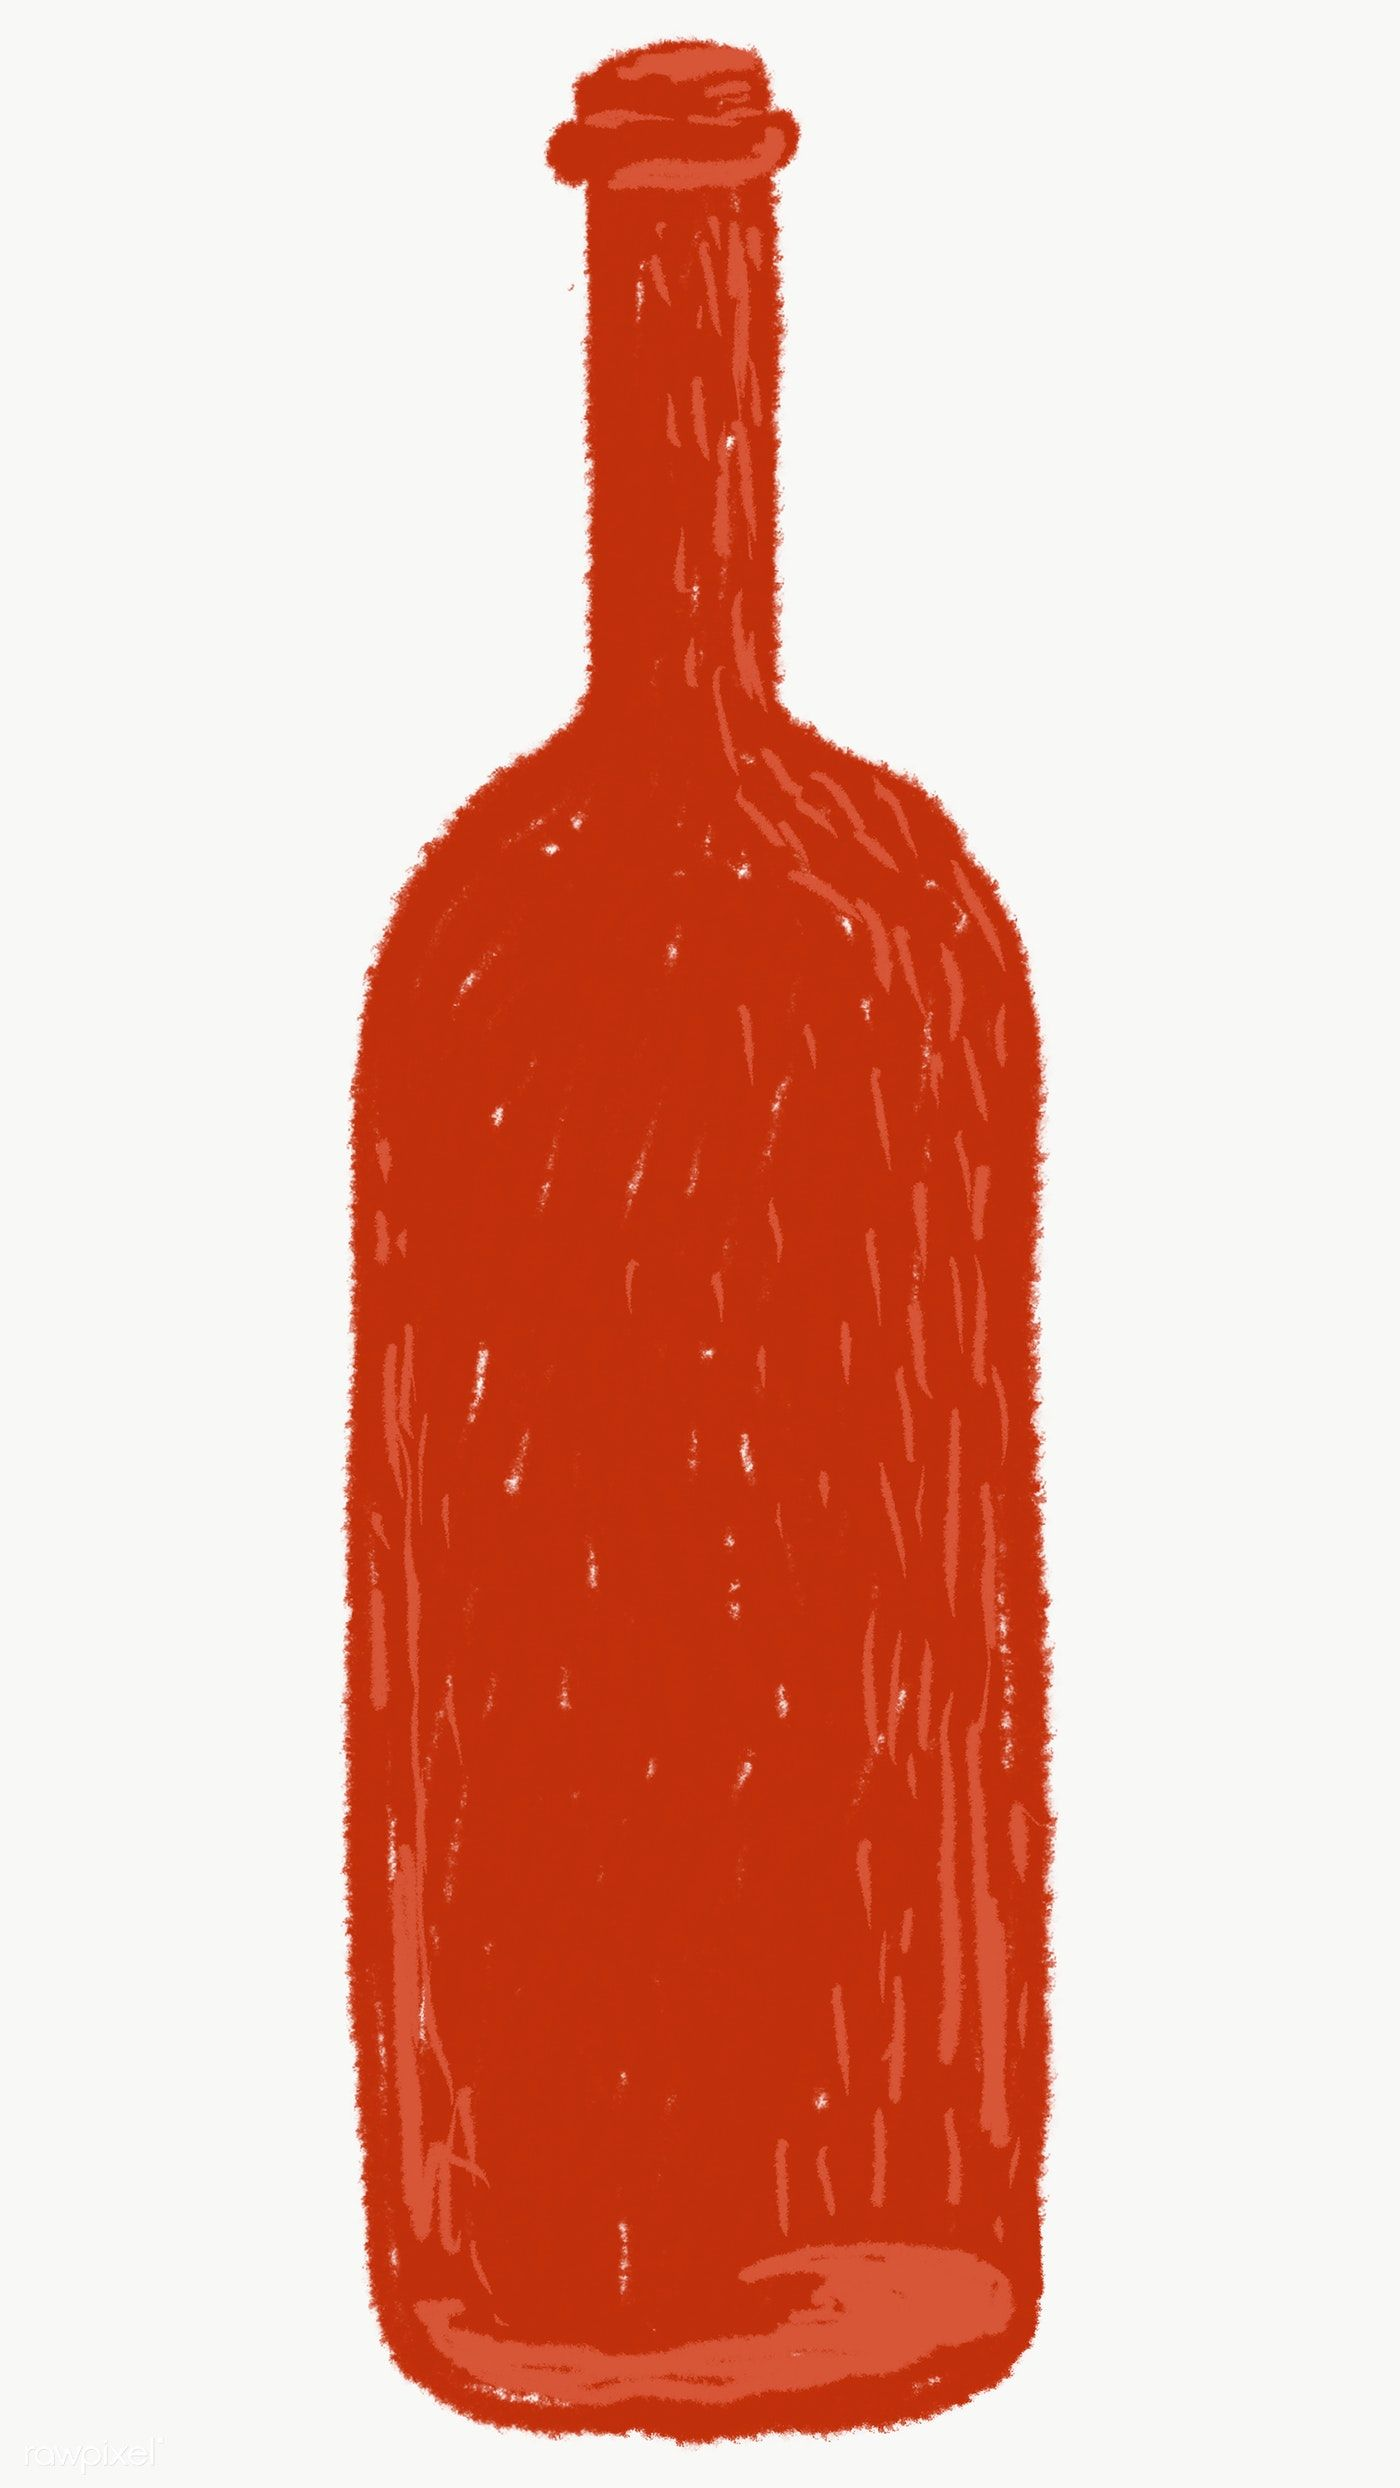 Red Glass Bottle Element Transparent Png Free Image By Rawpixel Com Sasi Green Glass Bottles Brown Glass Bottles Red Glass